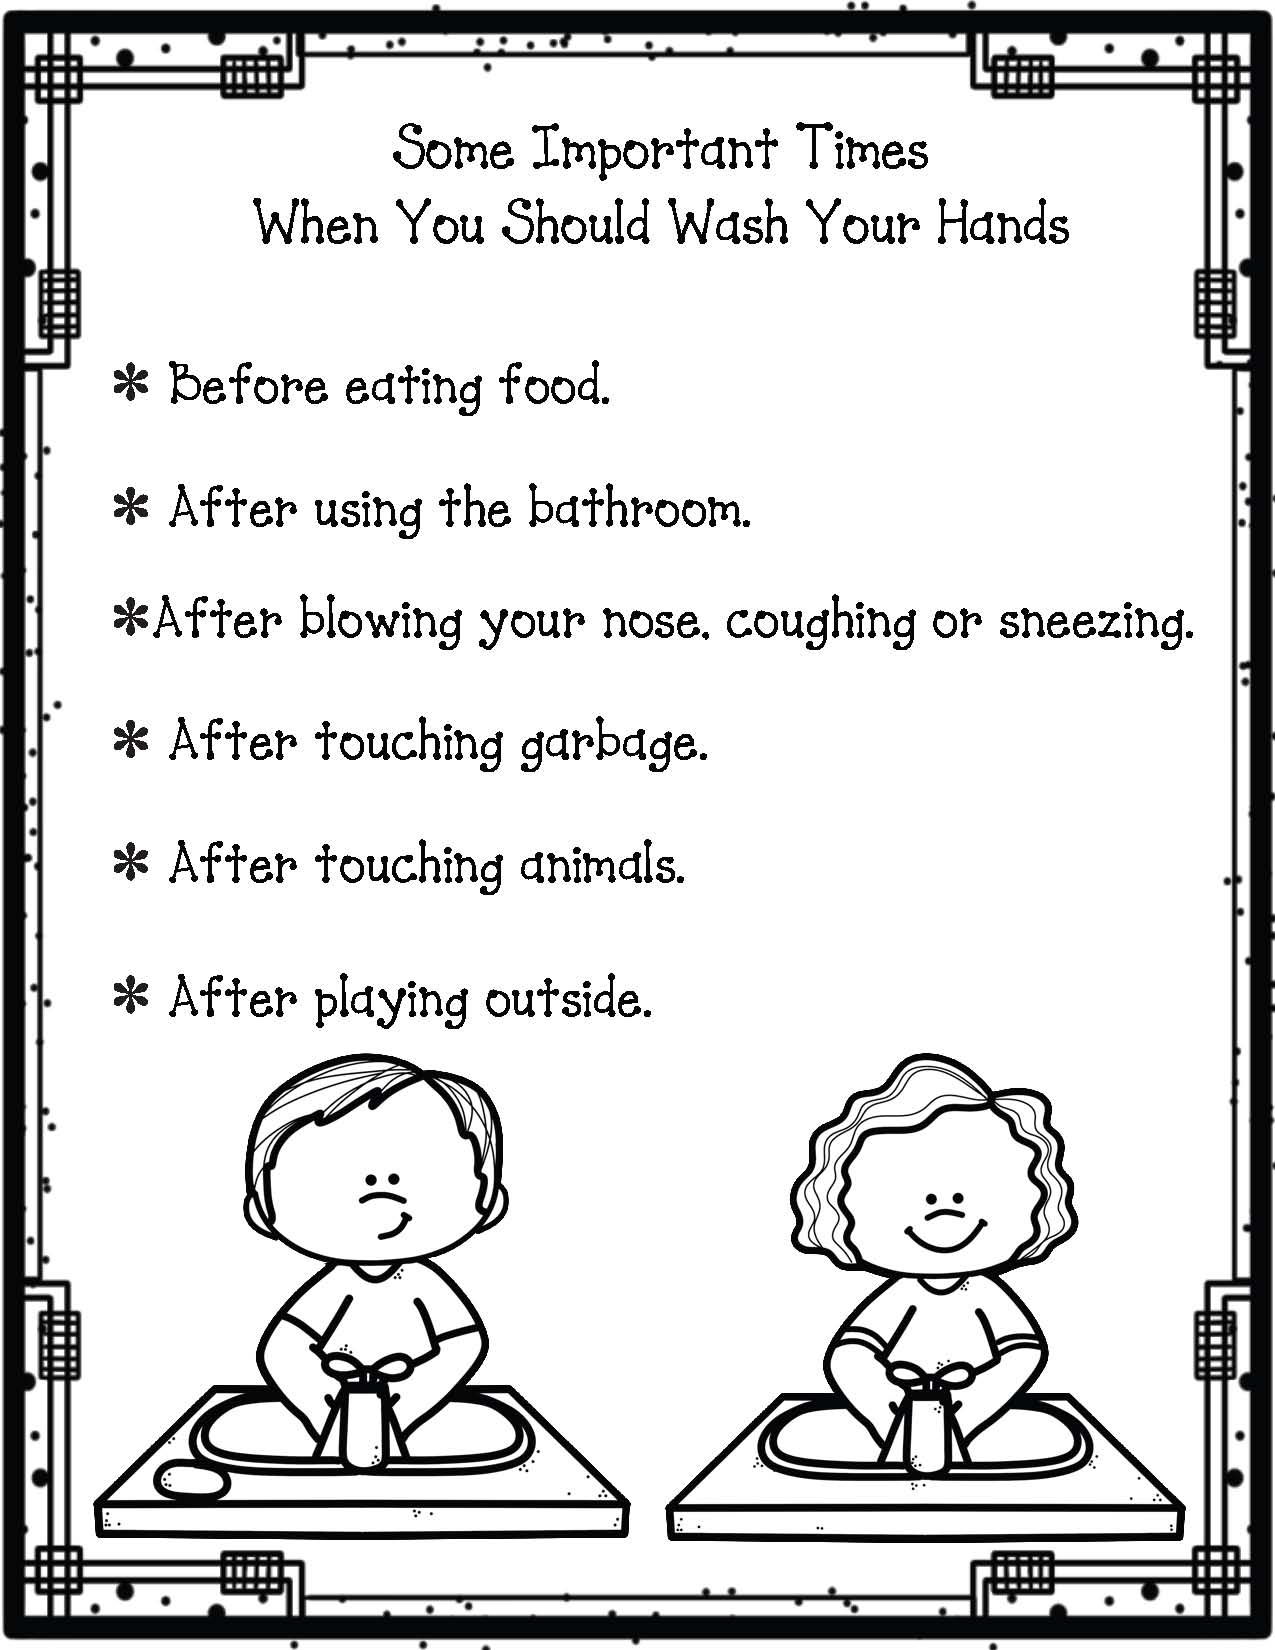 when should you wash your hands poster